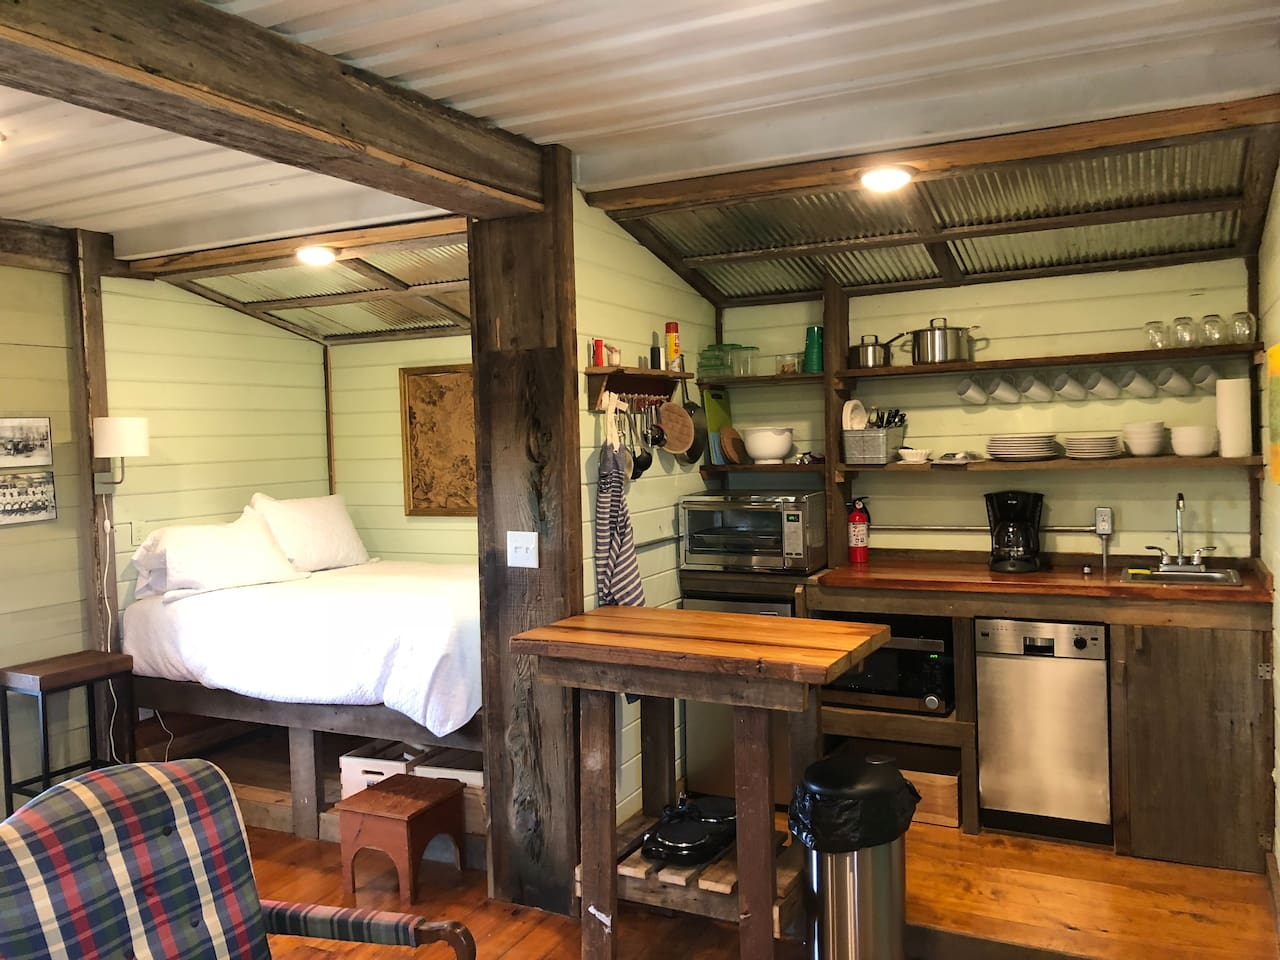 The container doors were welded open to create two extra spaces. The berth style bed on the left, and a mini kitchen on right—with convection oven, mini fridge, dishwasher and microwave. The shelves and trim are reclaimed cypress.